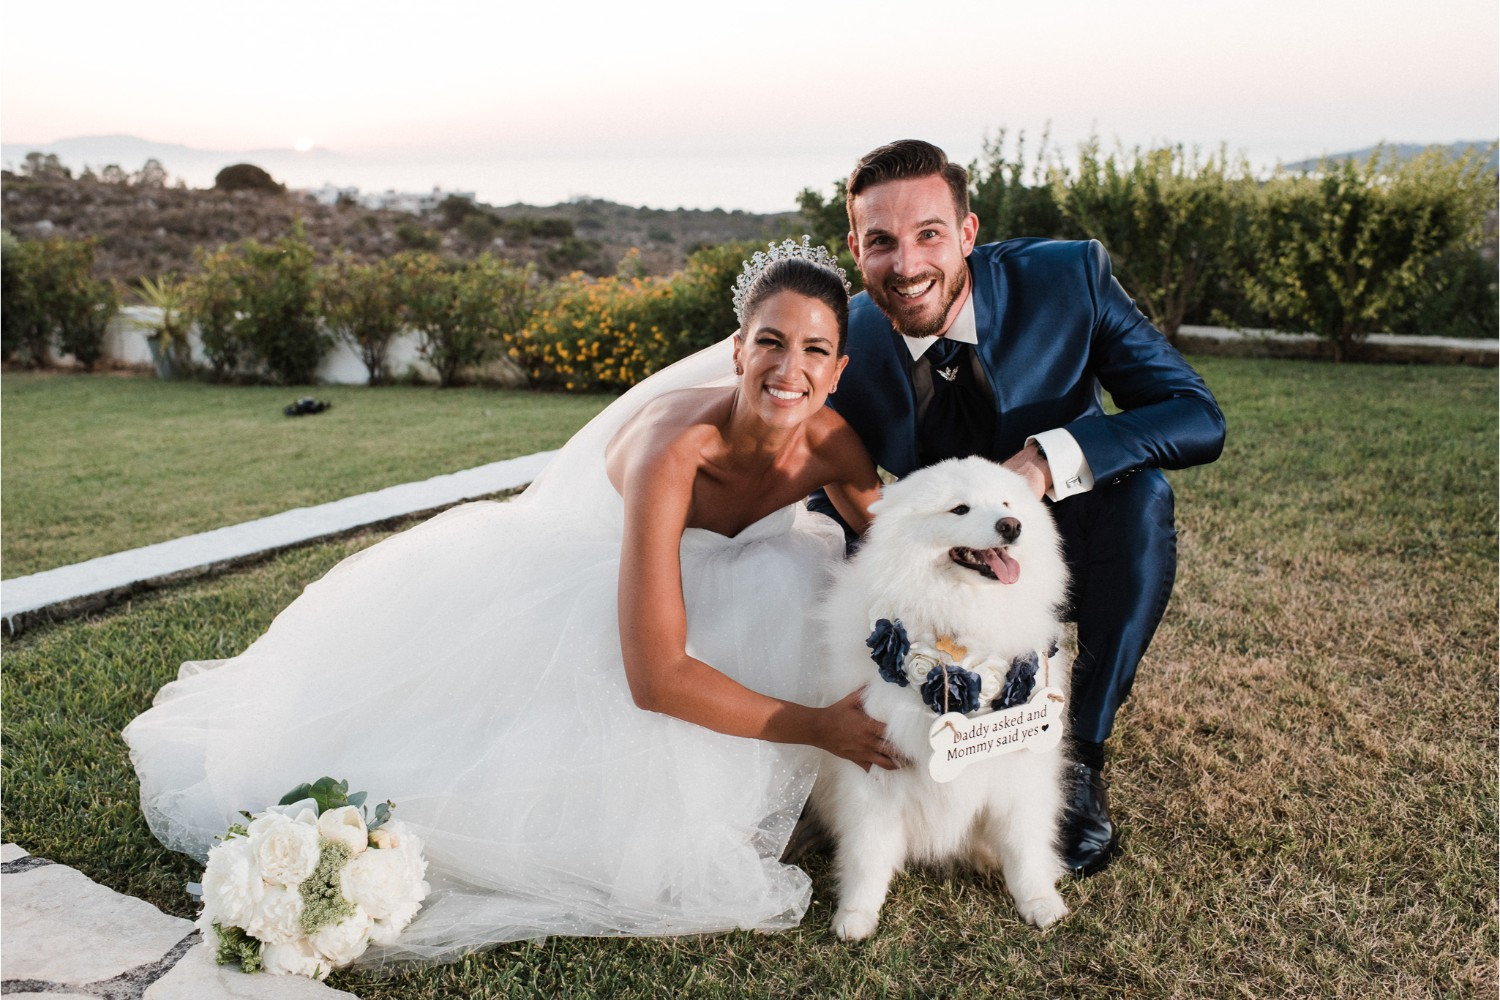 newlyweds & ring bearer at villa wedding in Crete